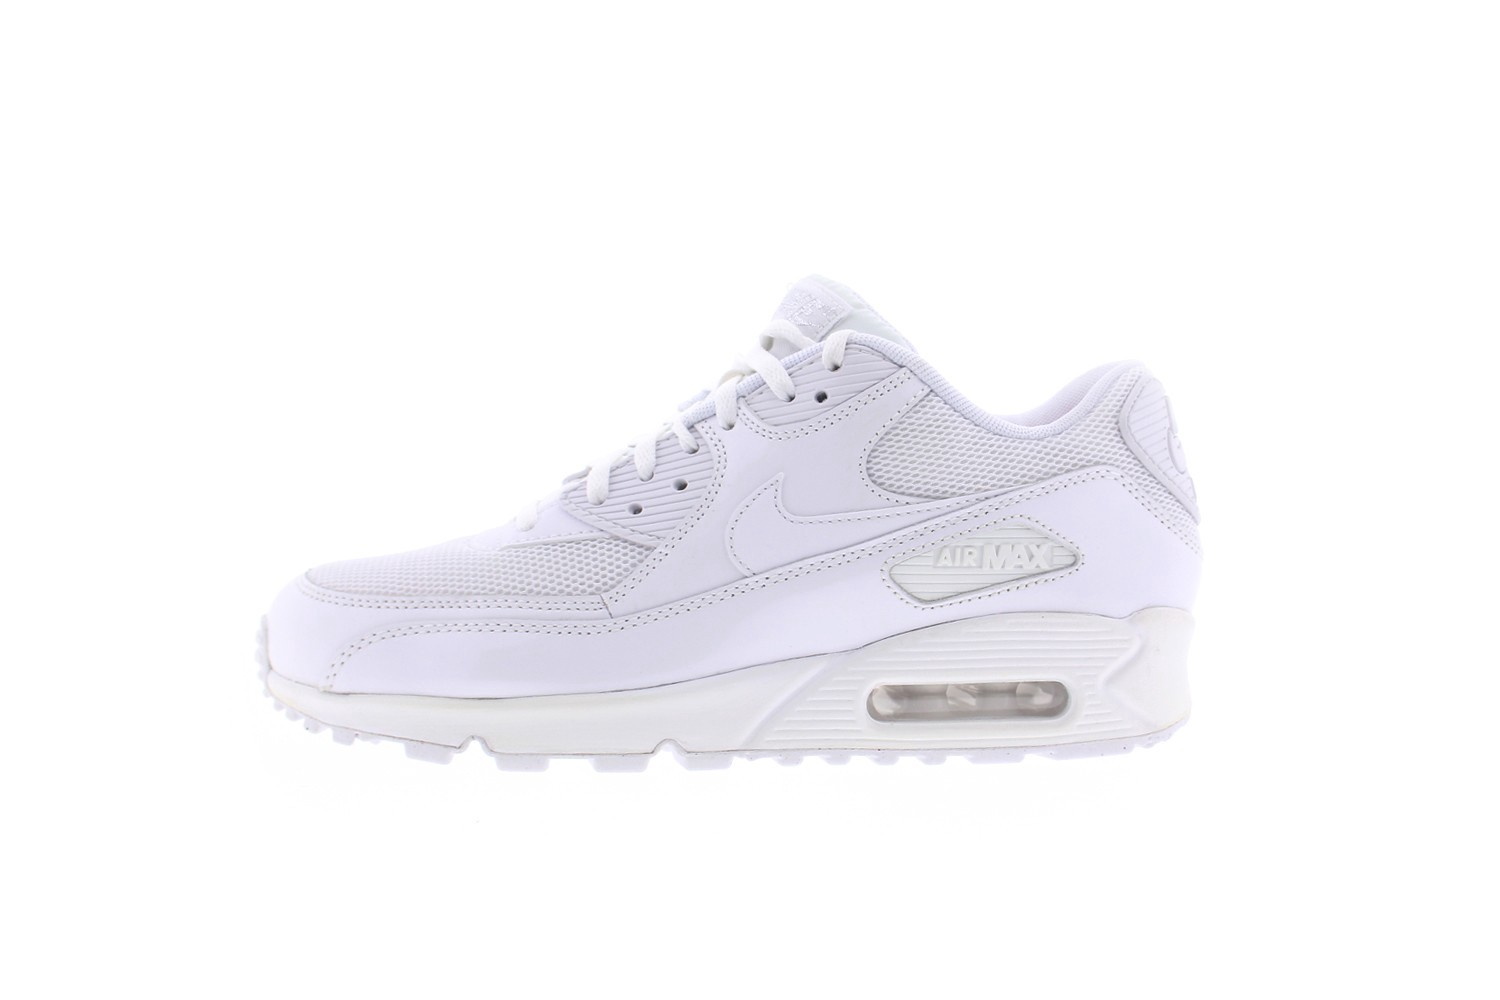 best service 42d41 e65c0 Air Max 90 blancas, a la venta en Foot on Mars.